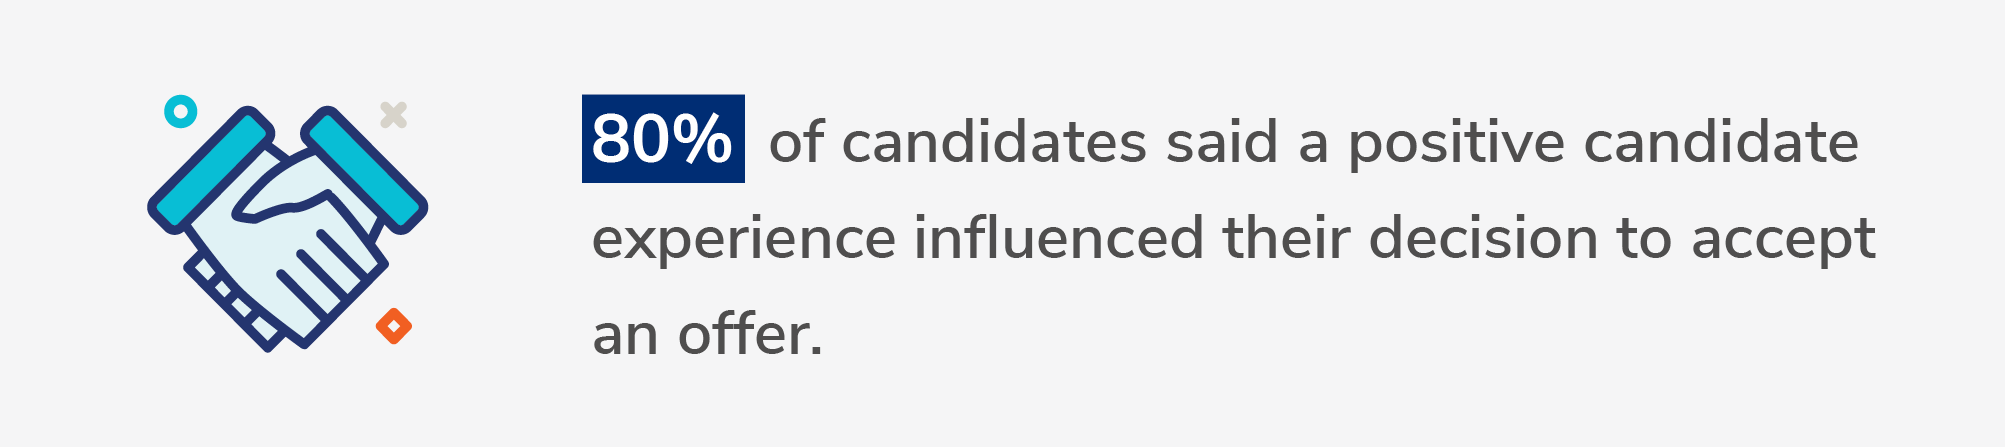 impact of positive candidate experience